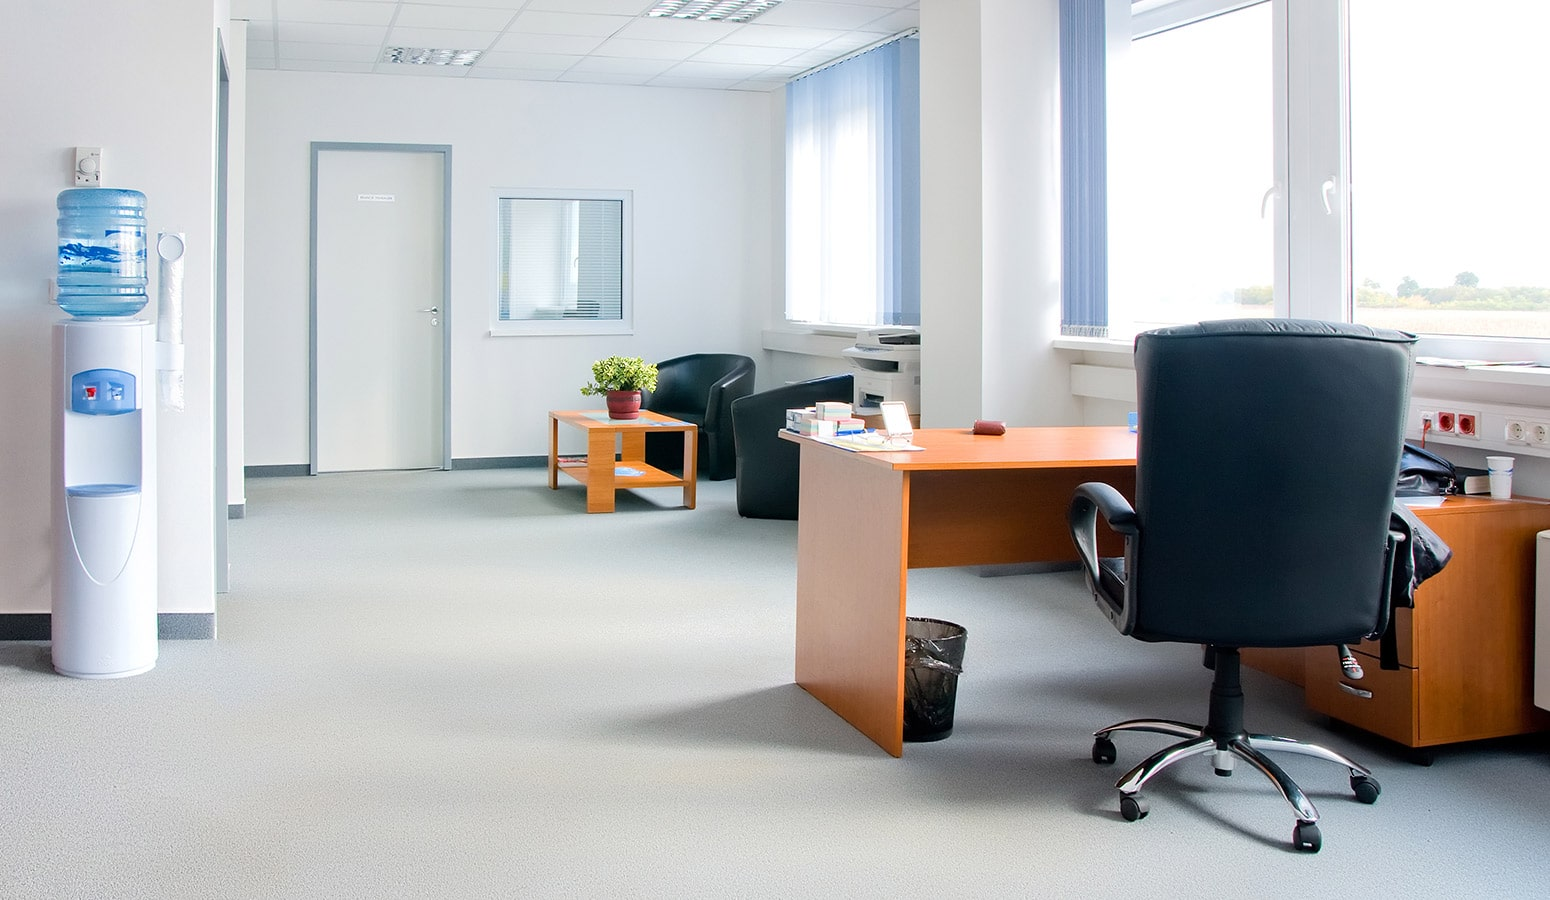 Office Cleaning In Canberra